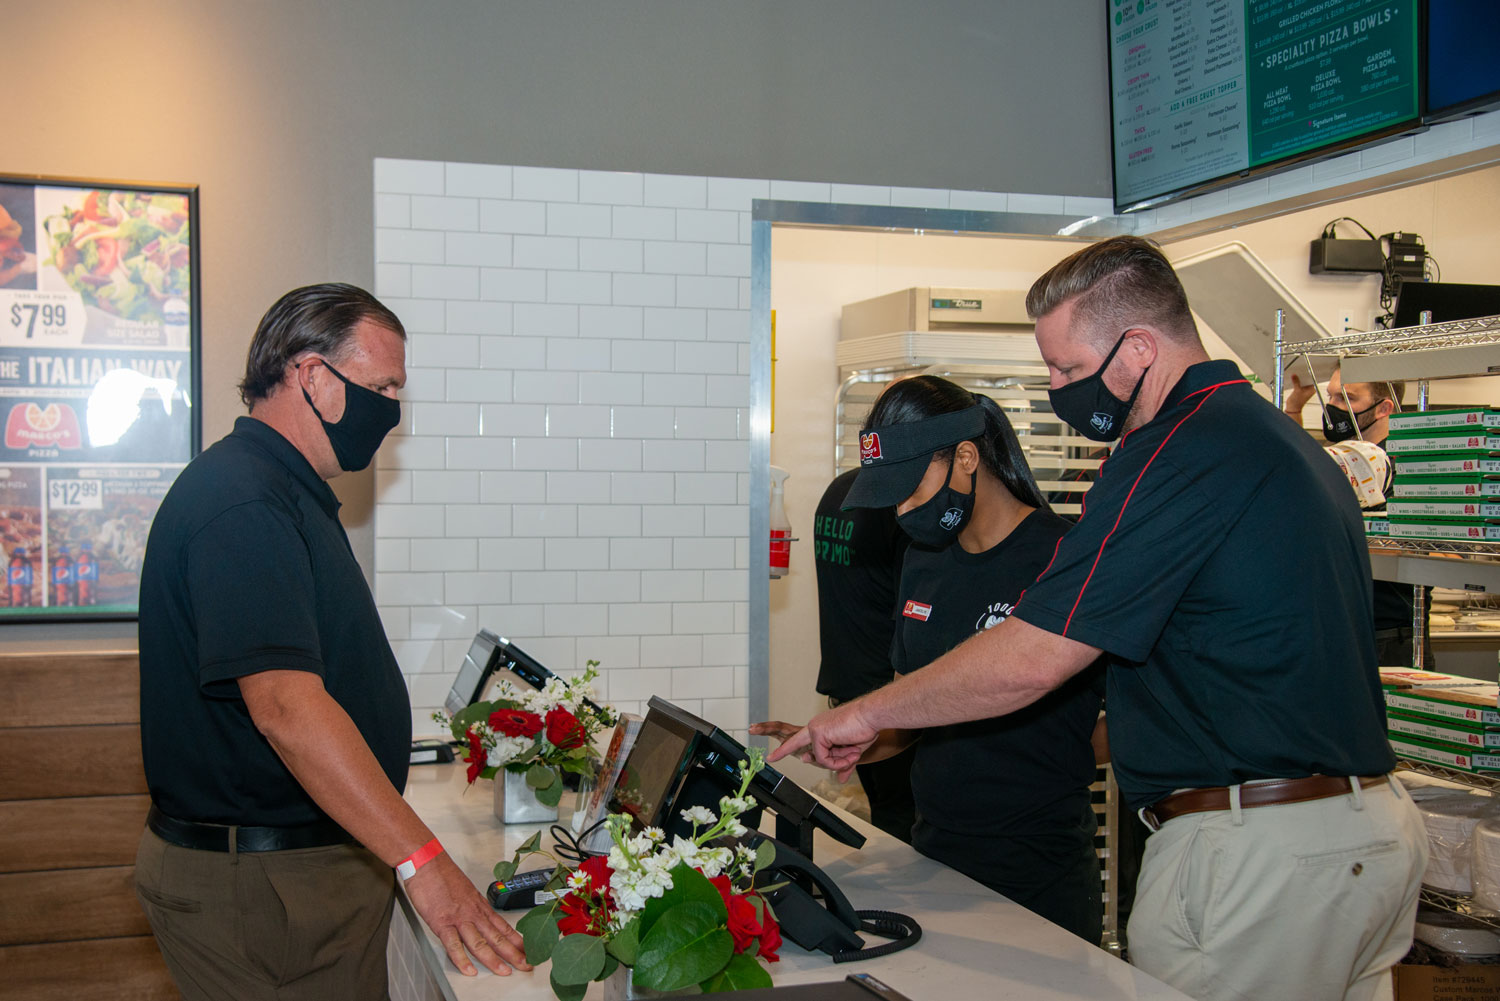 S-NET Communications becomes the first customer of the 1000th Marco's Pizza location.